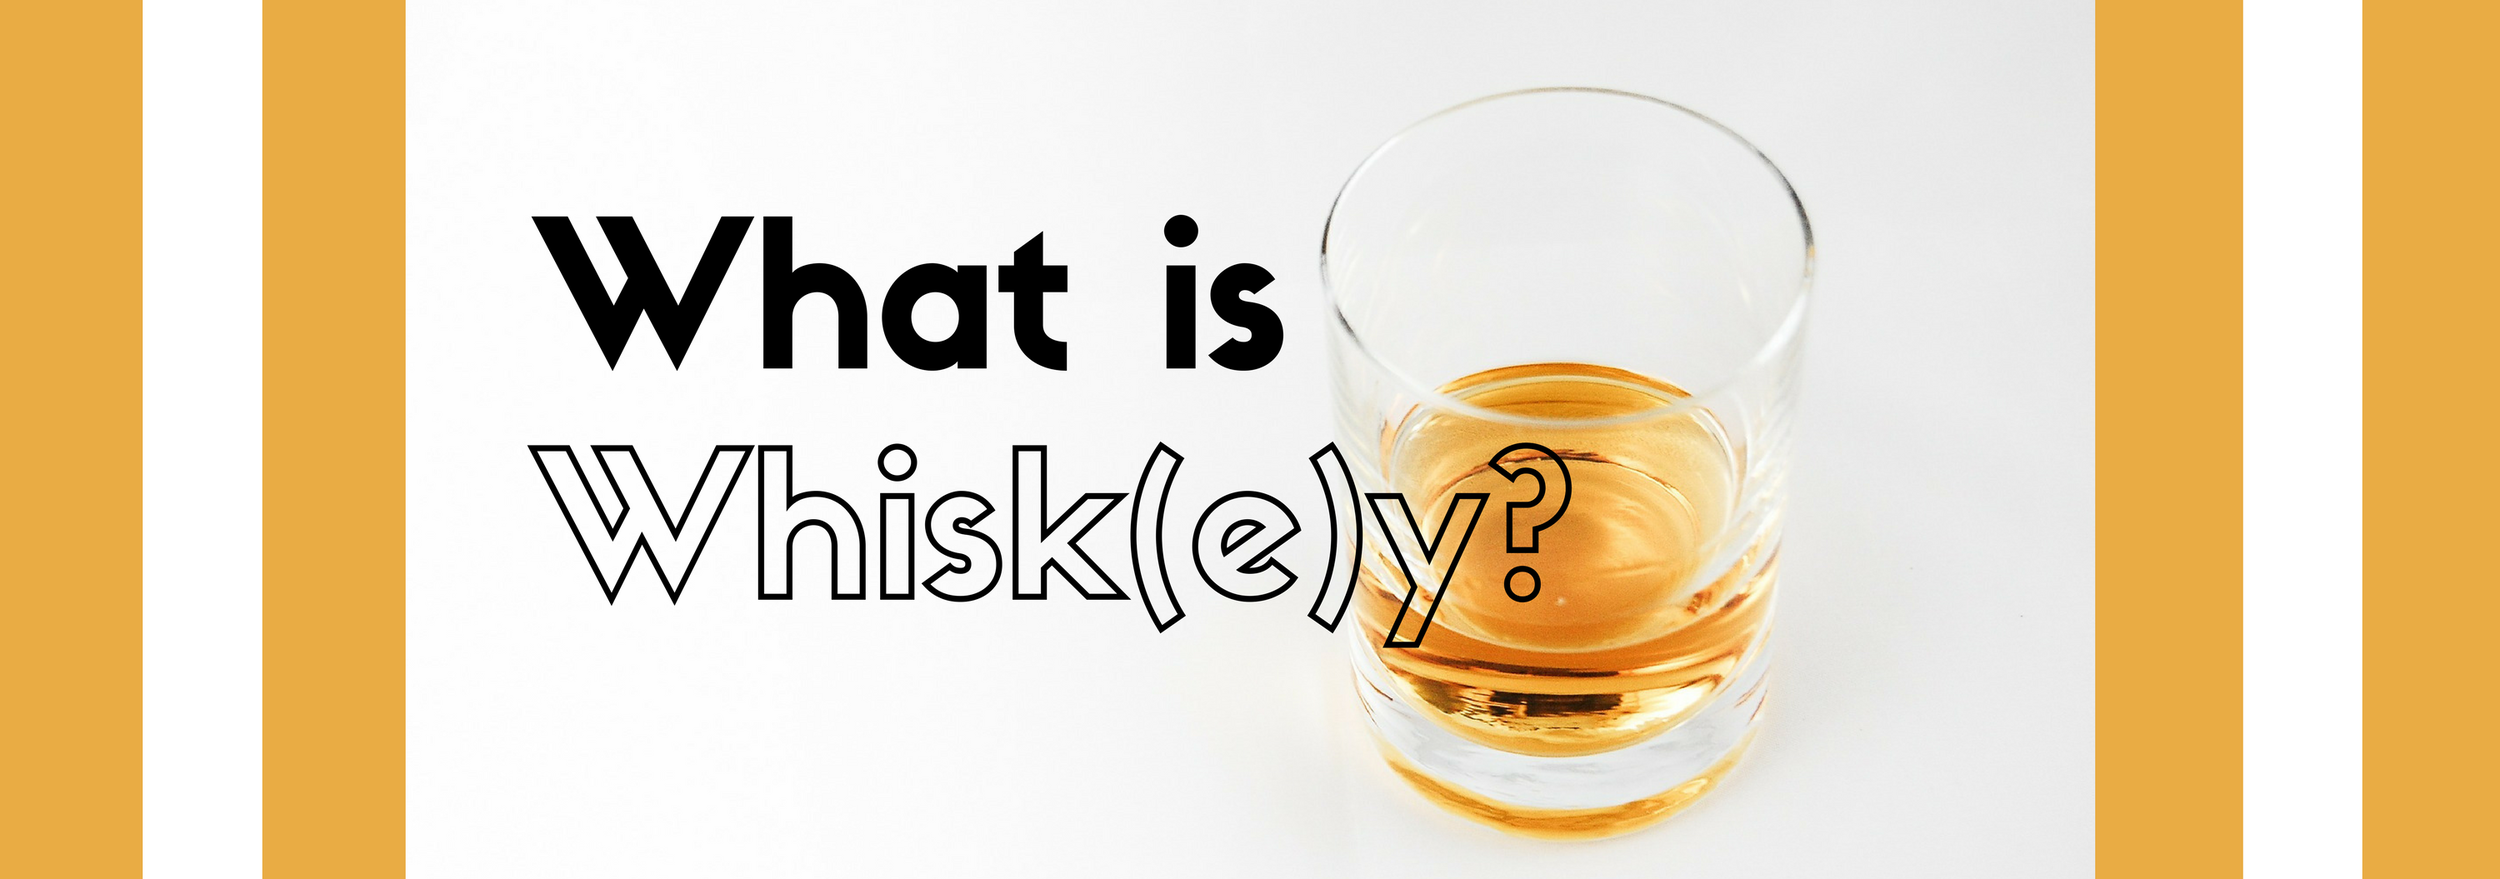 what-is-whiskey-21.png